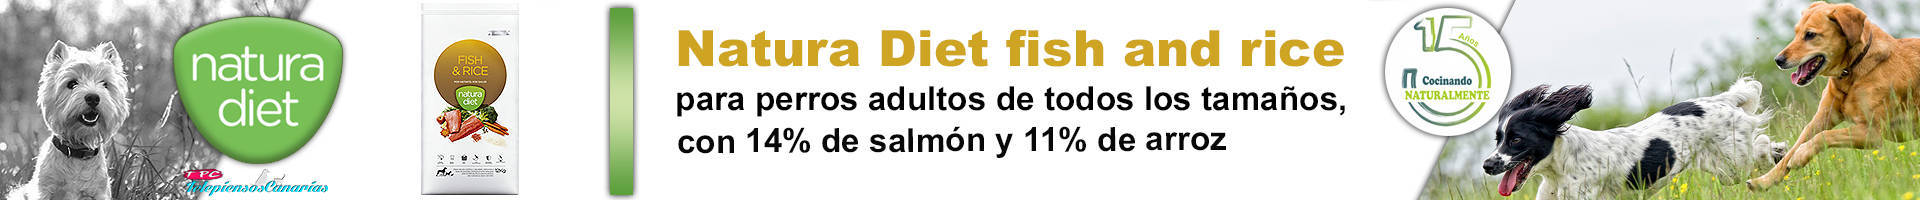 Natura diet fish and rice alimento para perros rico en for Fish and rice diet